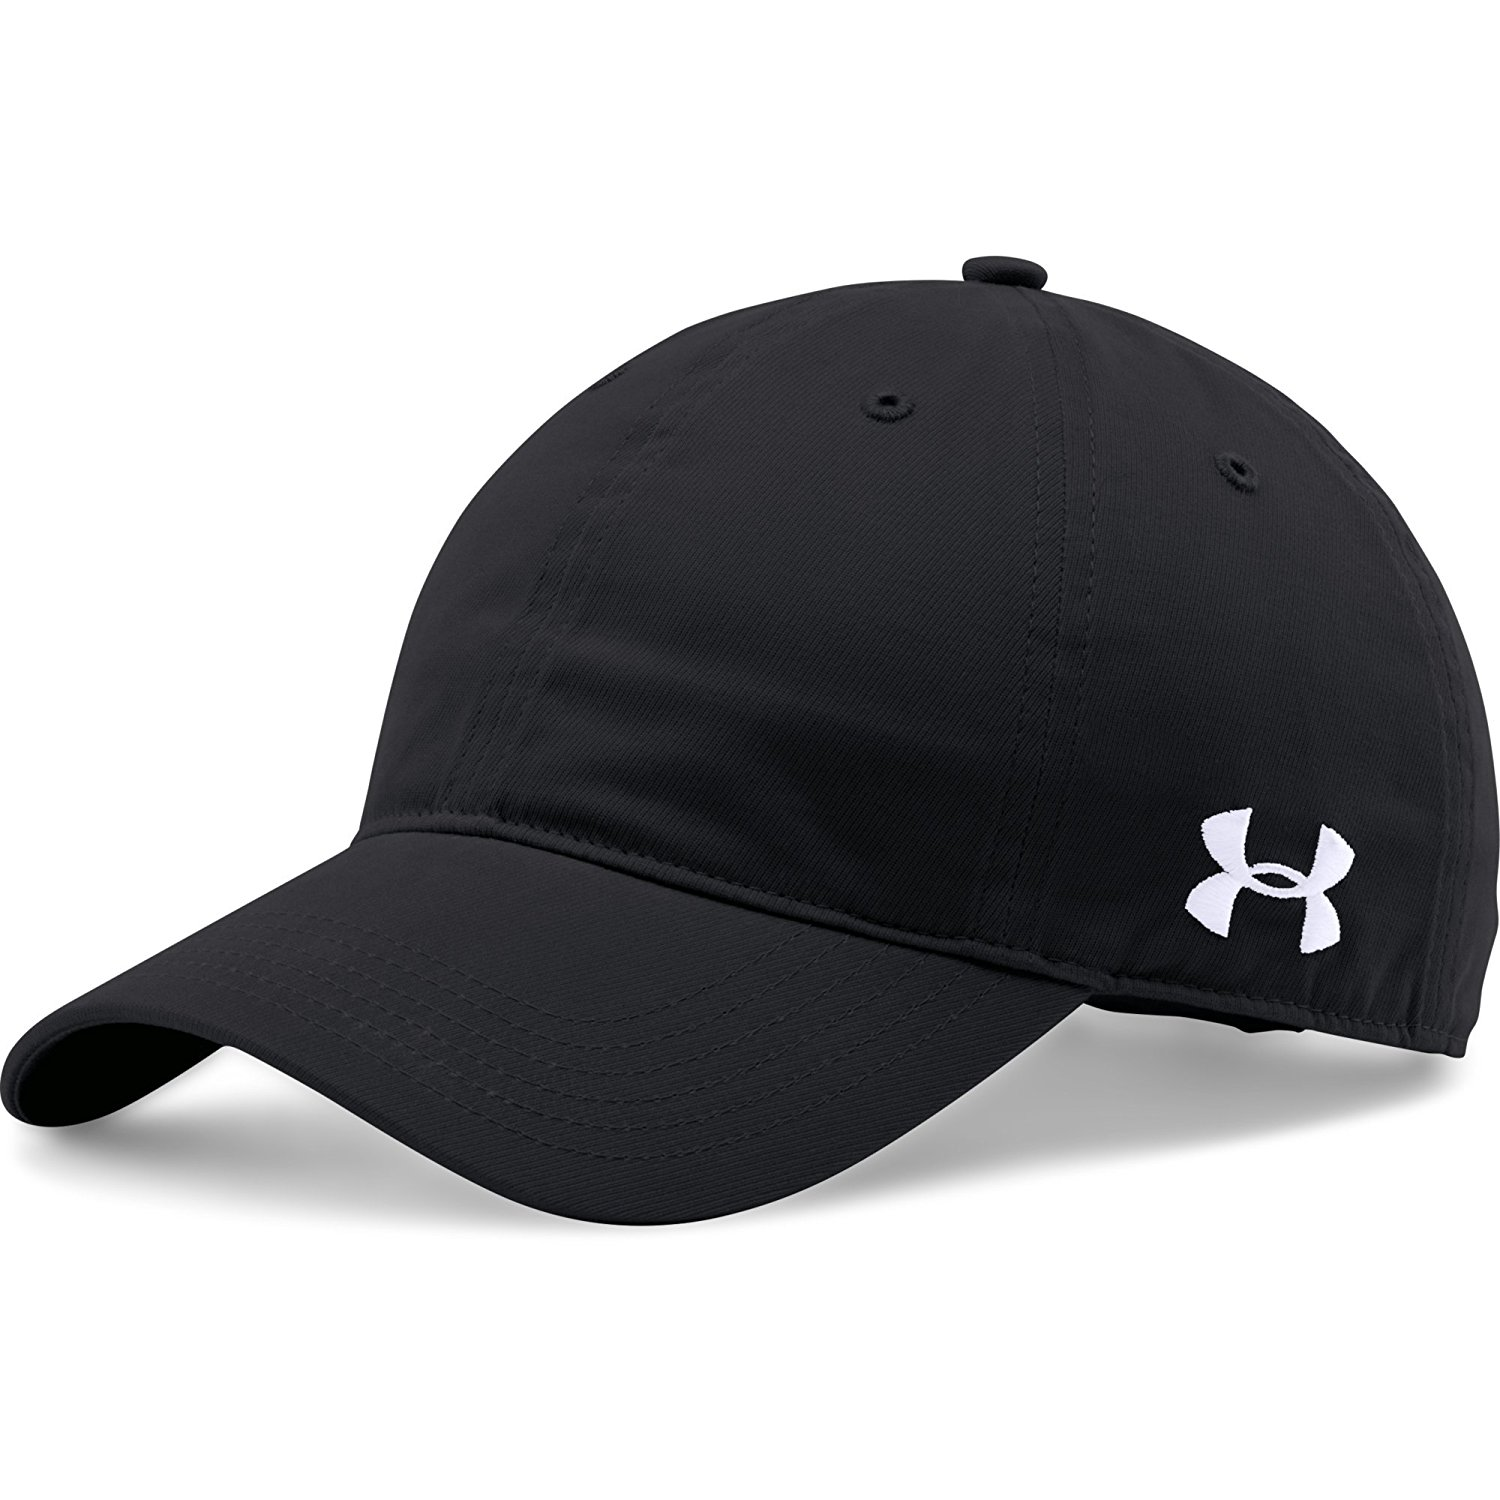 bbedb95537c Get Quotations · Under Armour Women s Chino Cap